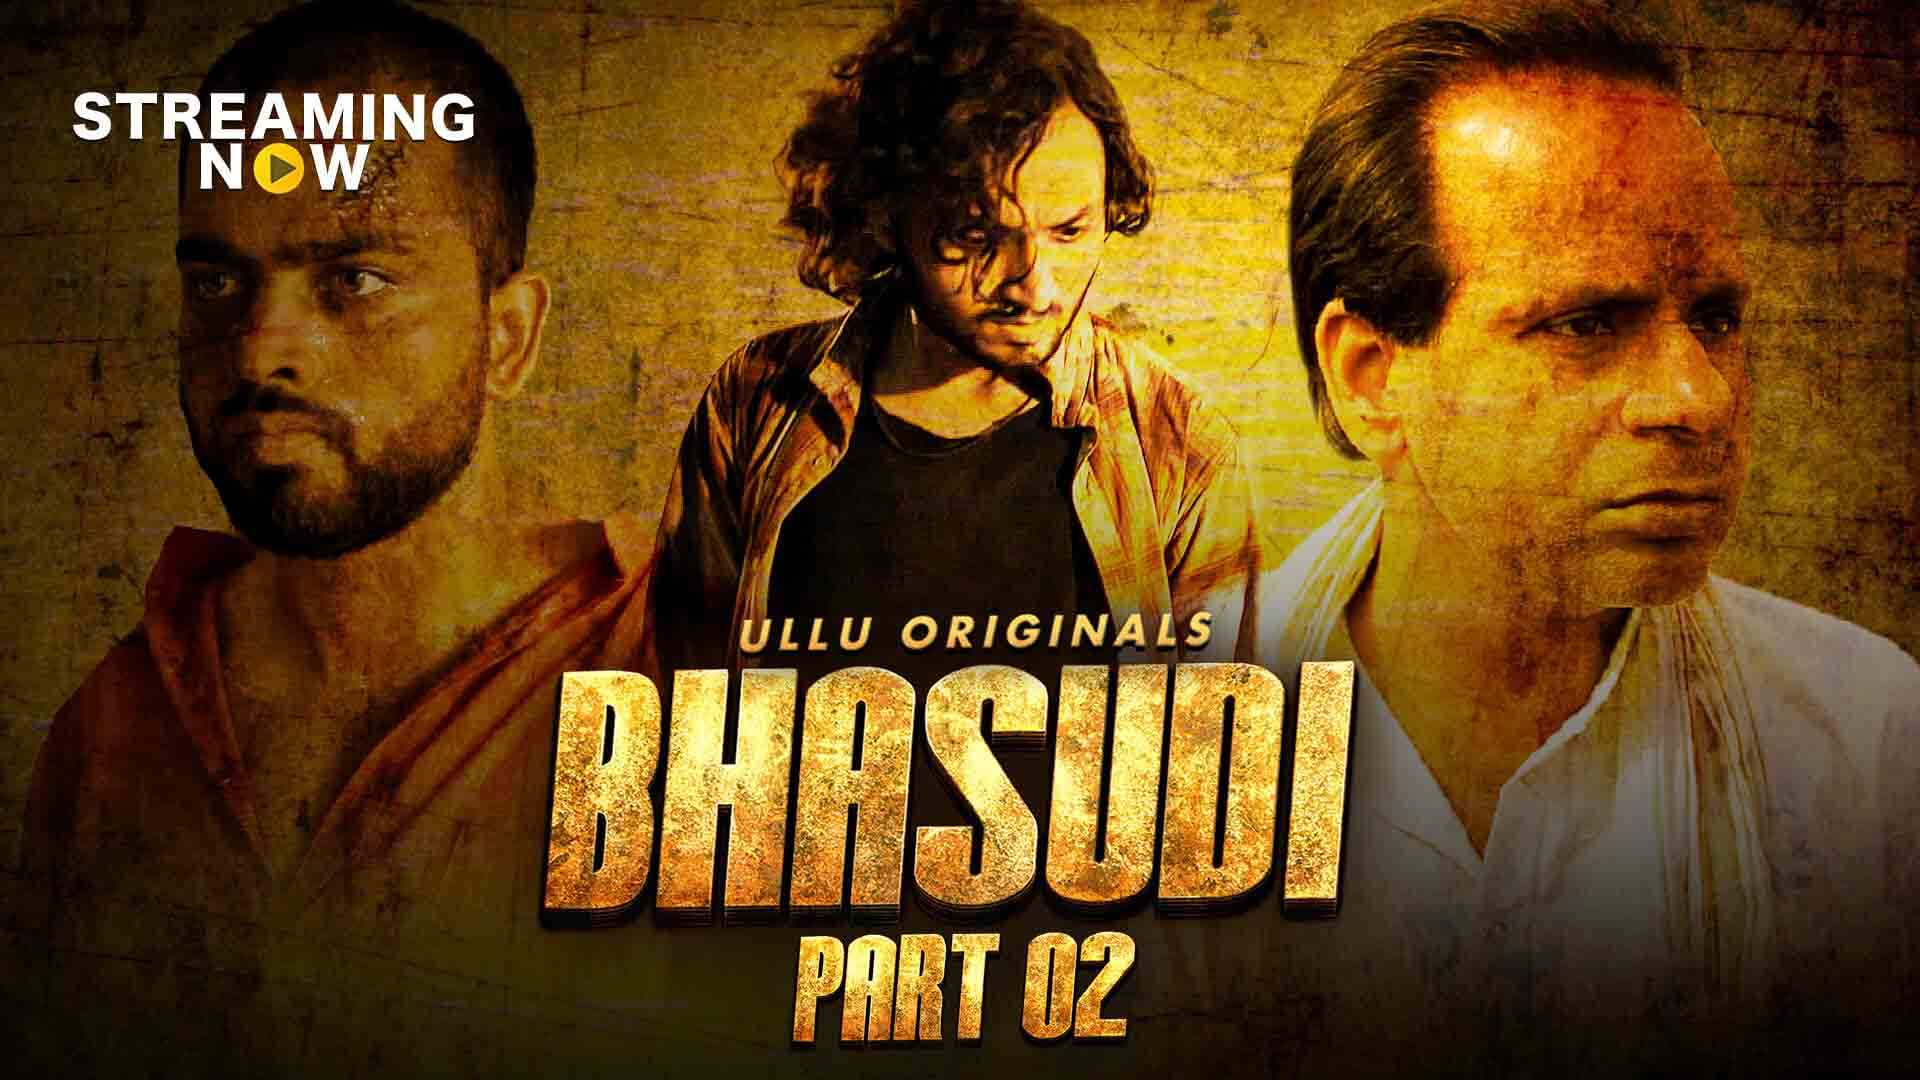 Bhasudi Part 2 2020 S01 Hindi ULLU Originals Complete Web Series 720p HDRip 575MB Download